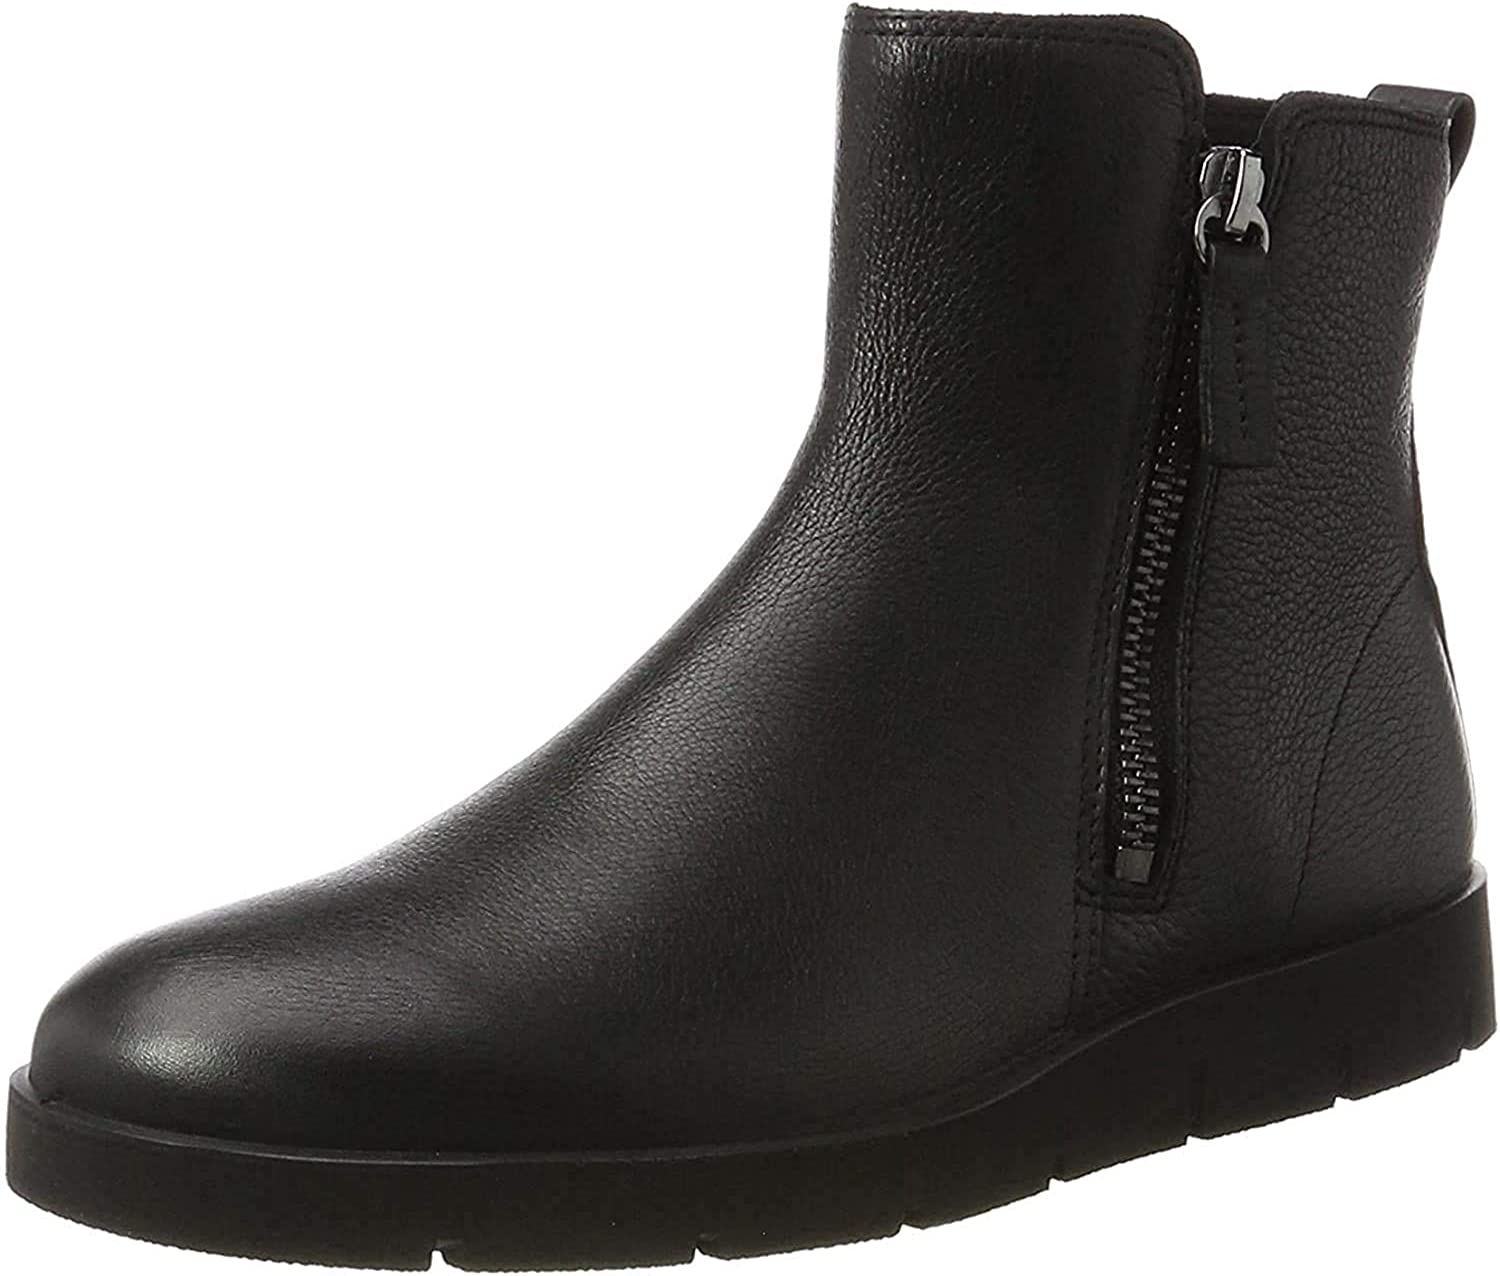 Max free shipping 50% OFF ECCO Women's Bella Bootie Zip Ankle